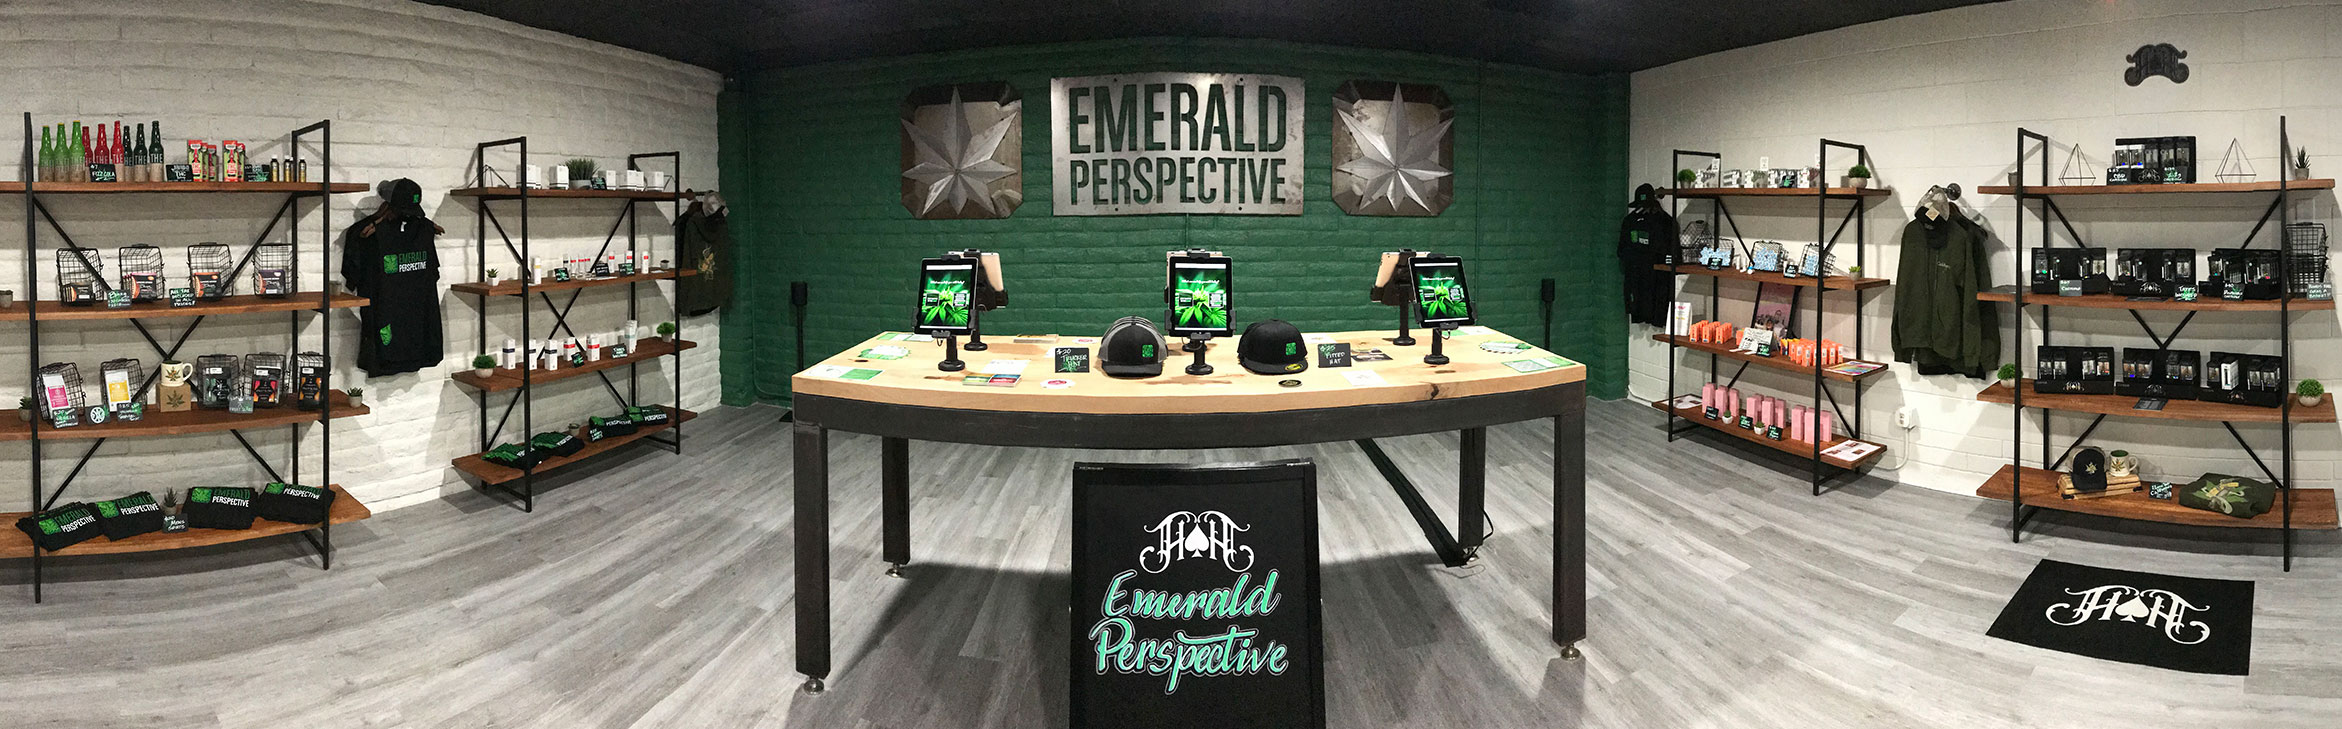 Emerald Perspective: cannabis dispensary and marijuana delivery in Port Hueneme, CA